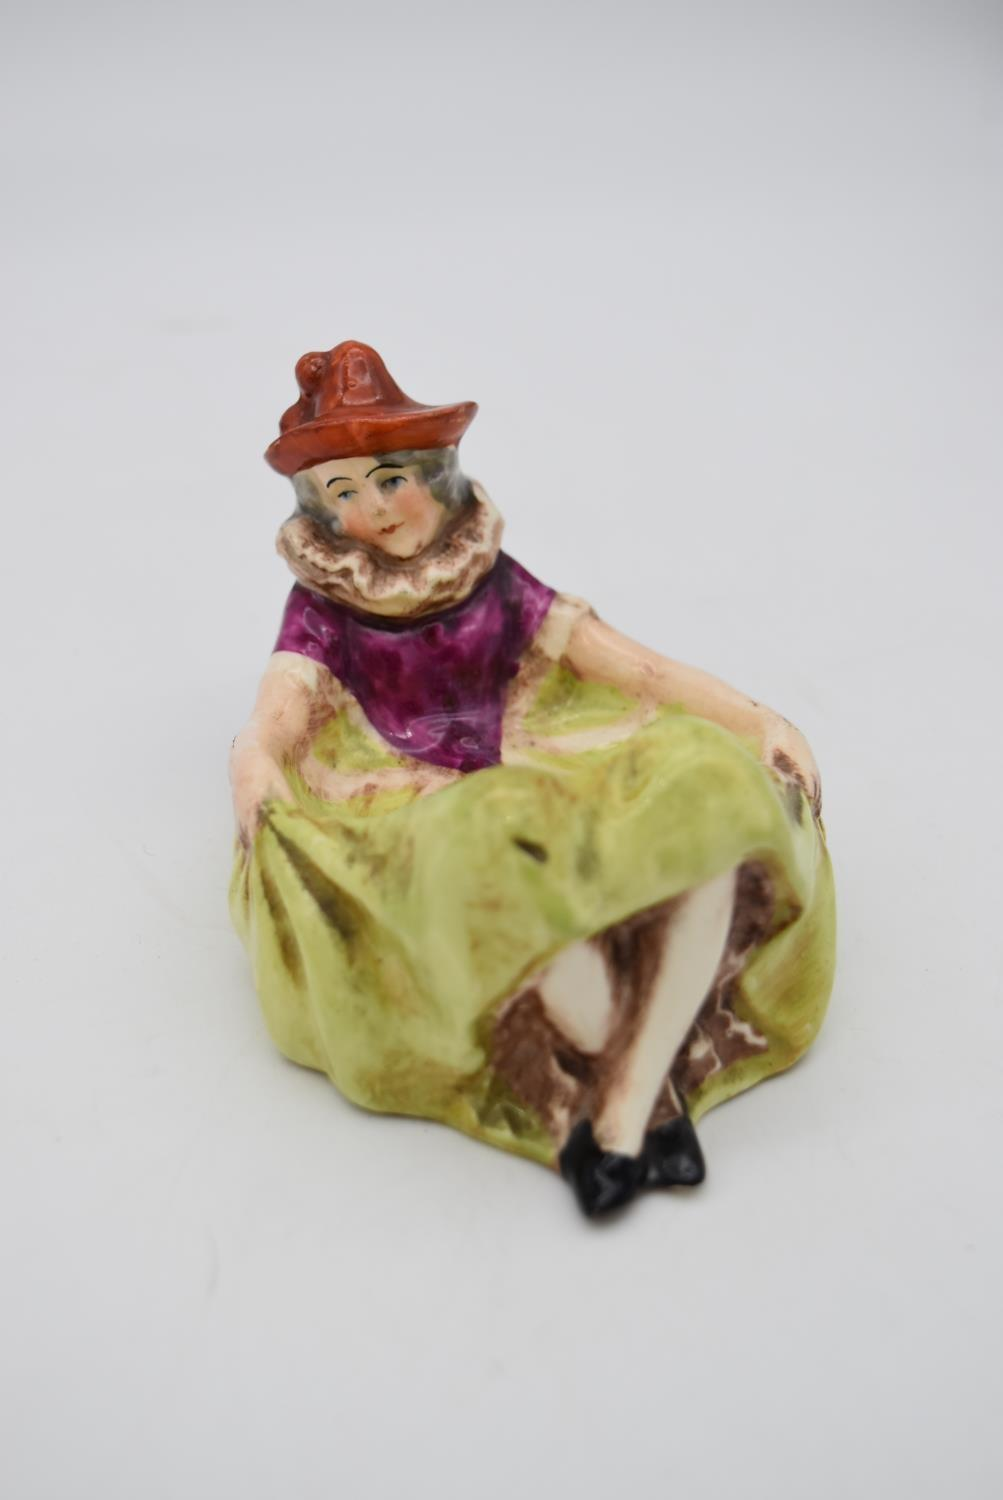 Two antique hand painted porcelain lying figures, one male clown and a female clown, used as dishes. - Image 7 of 9